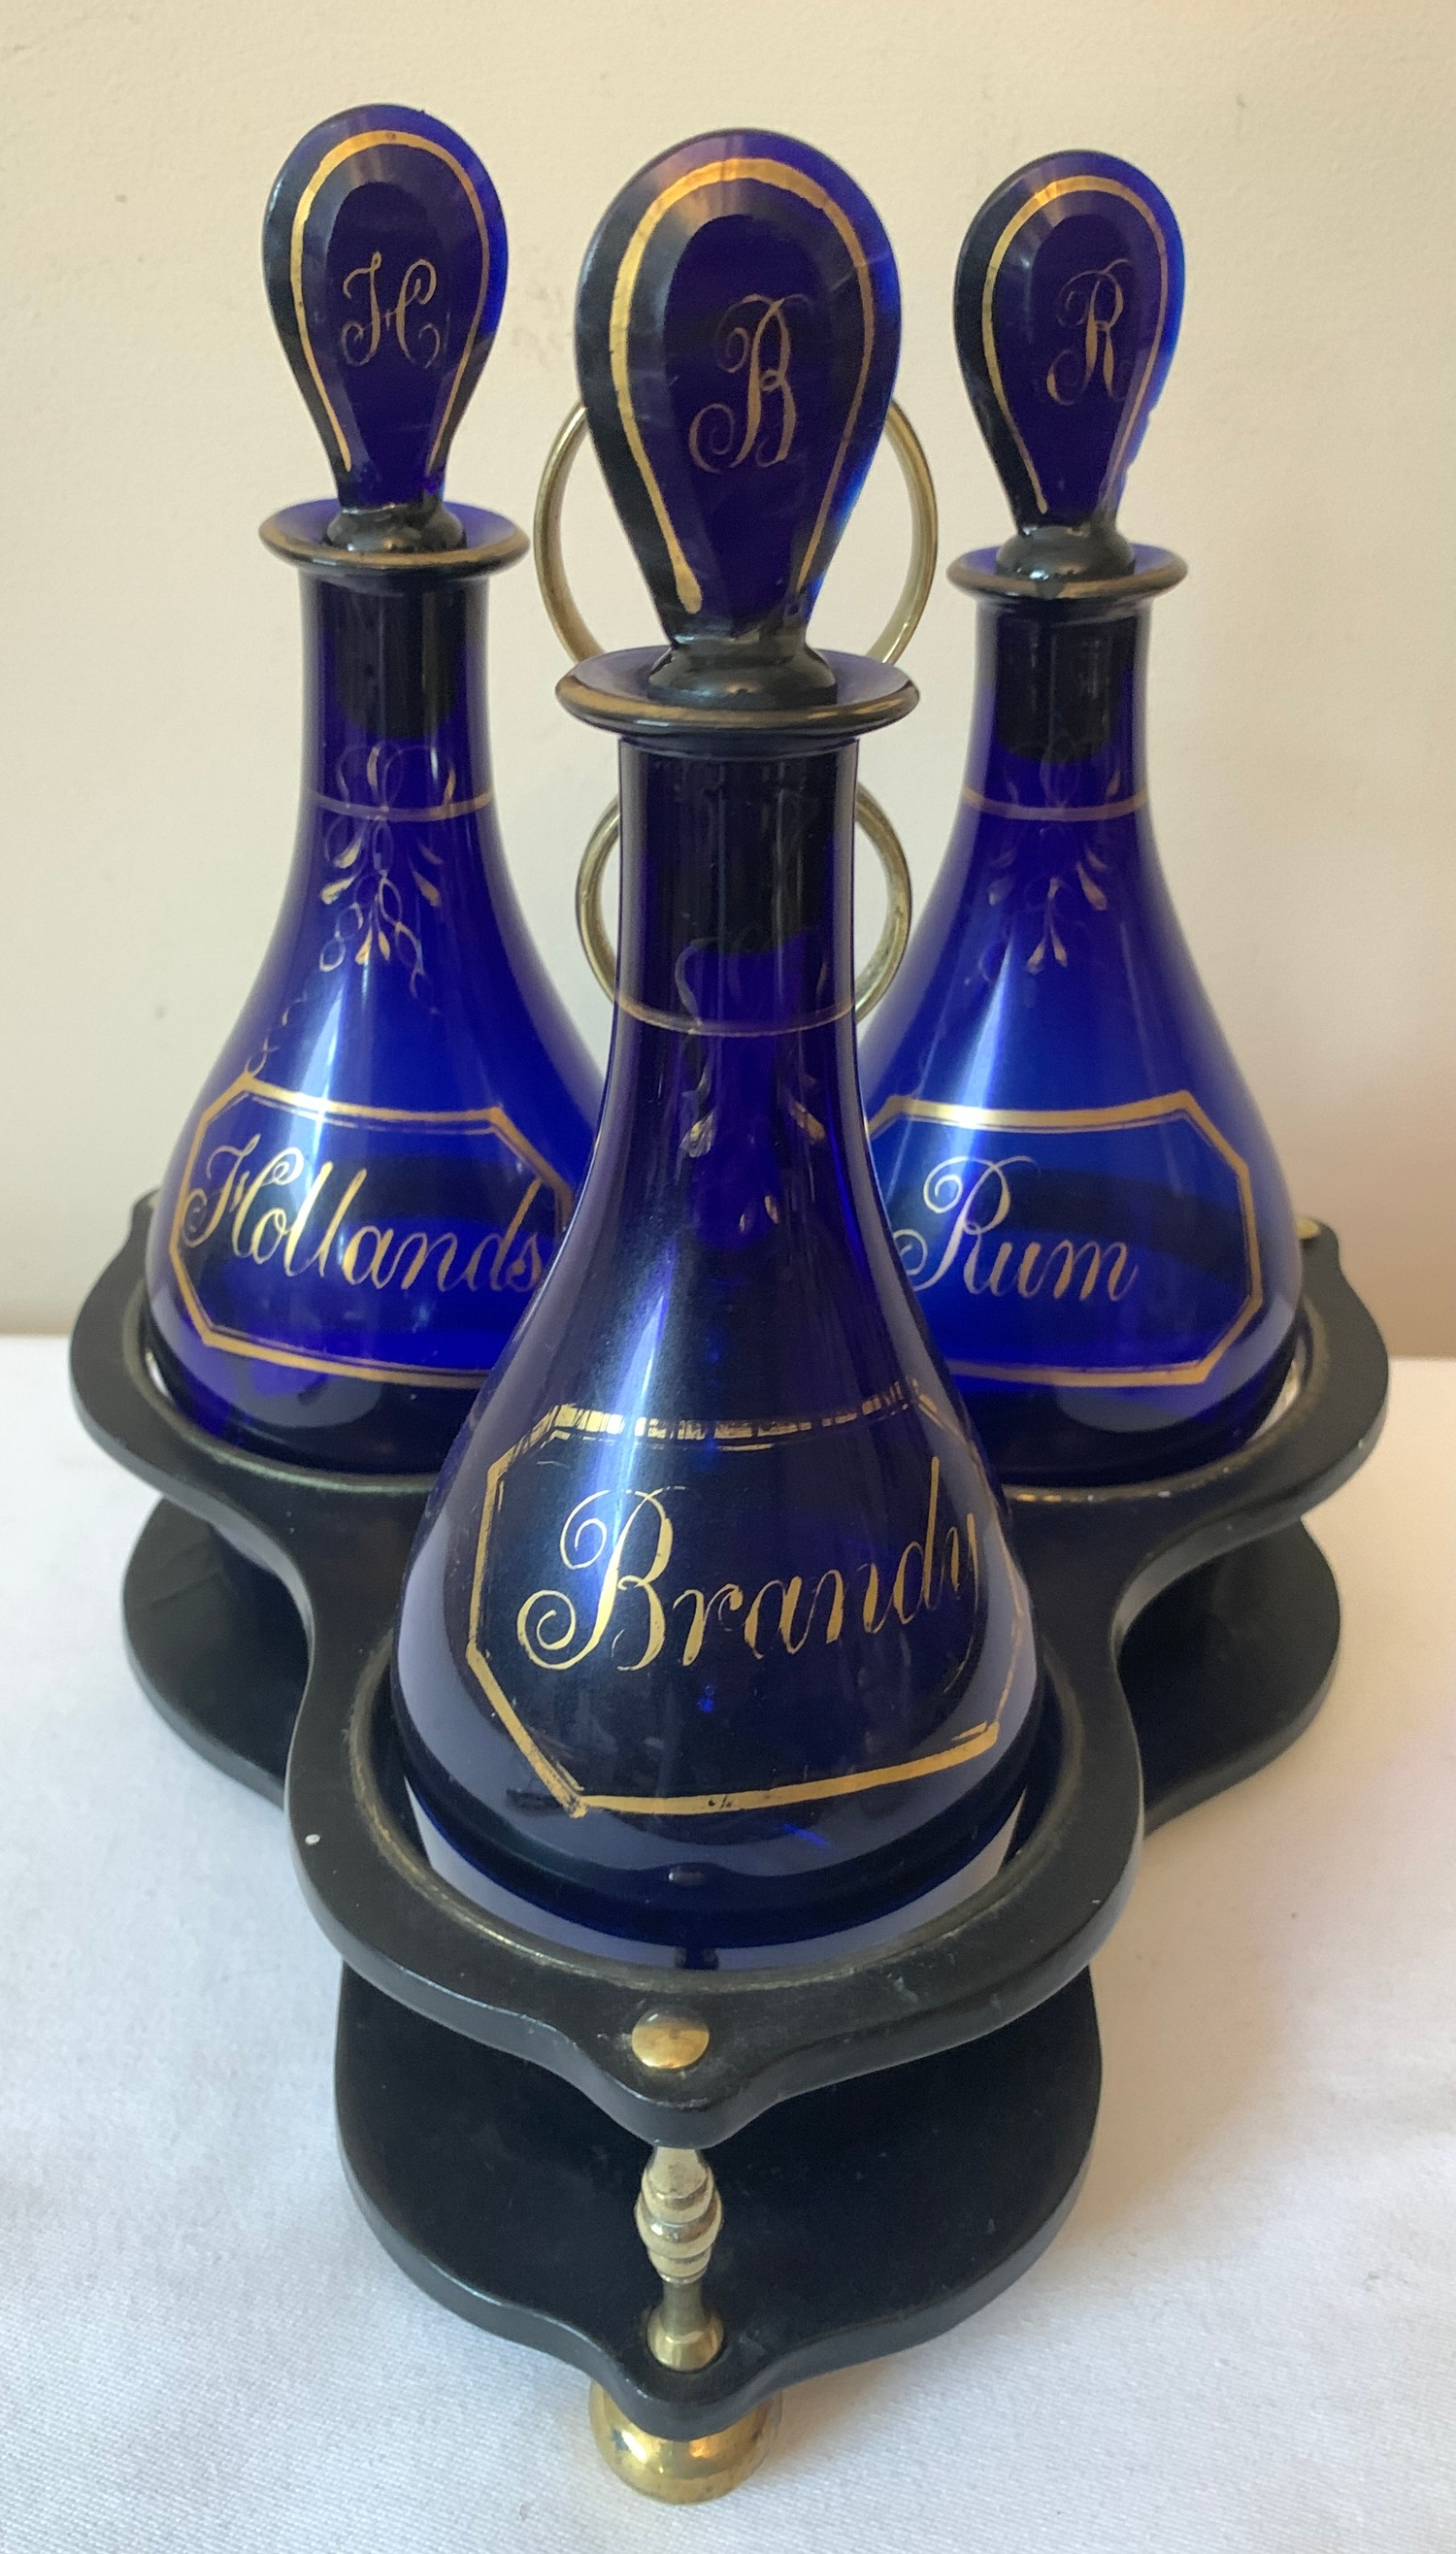 Three early 19thC Bristol Blue bottle decanters on paper mache and brass stand. Comprises of